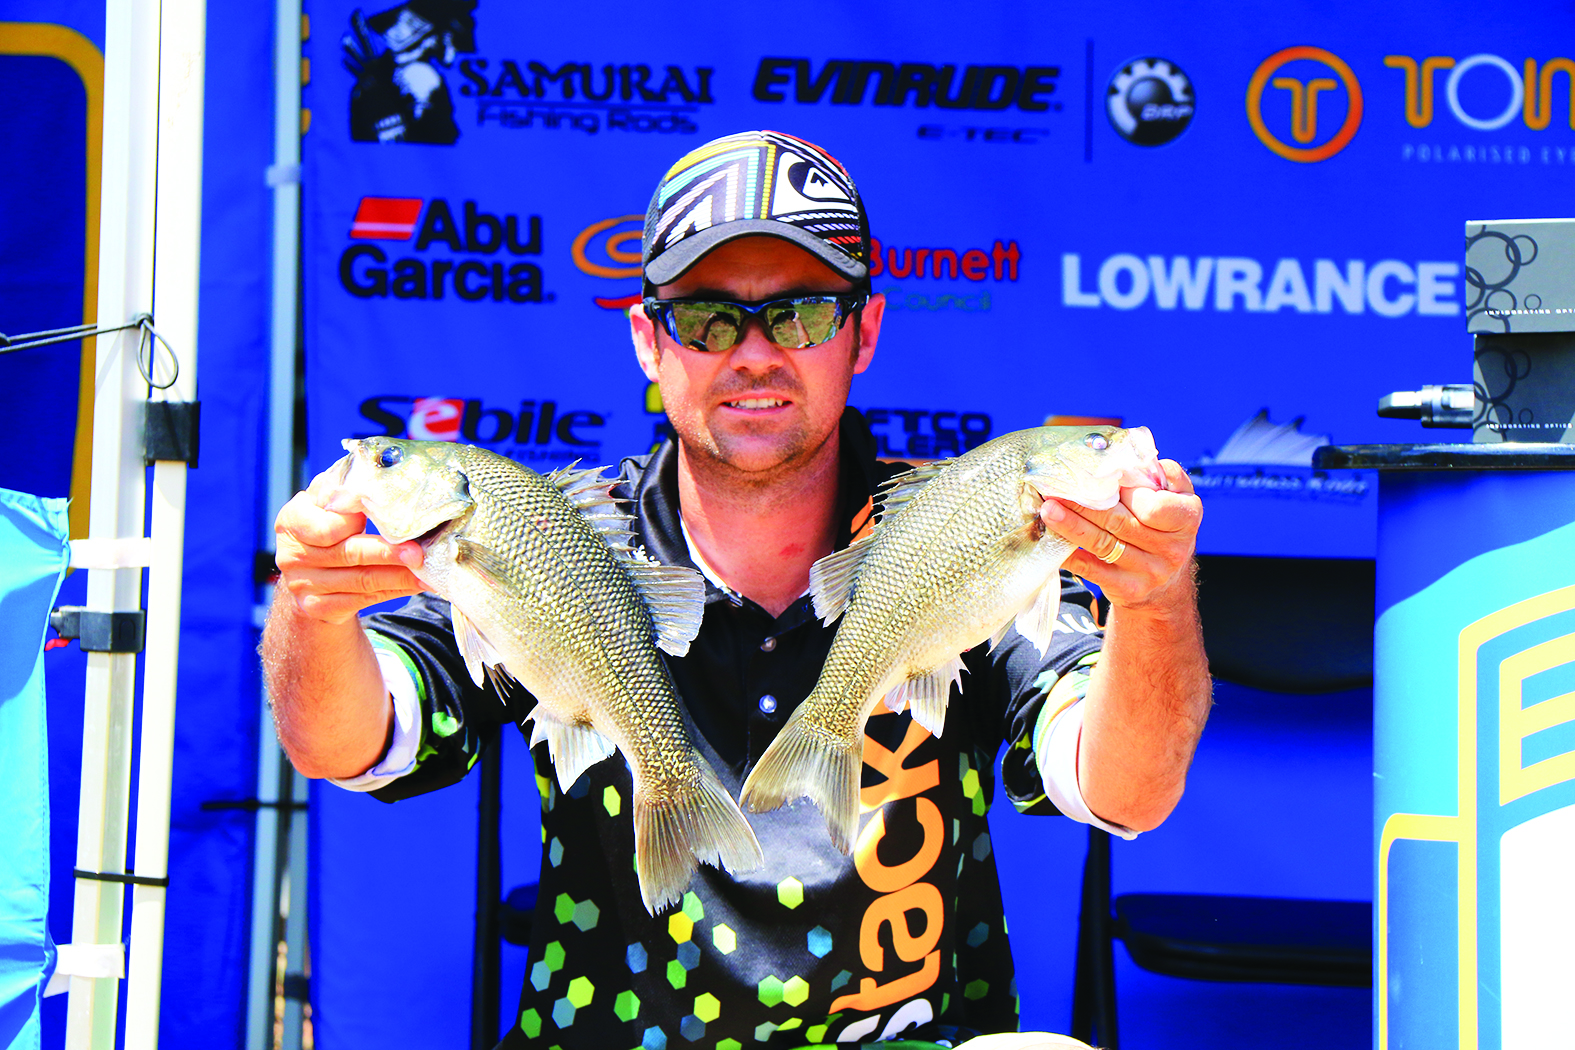 Brad Turner was super consistent and took out the Co-Angler division.